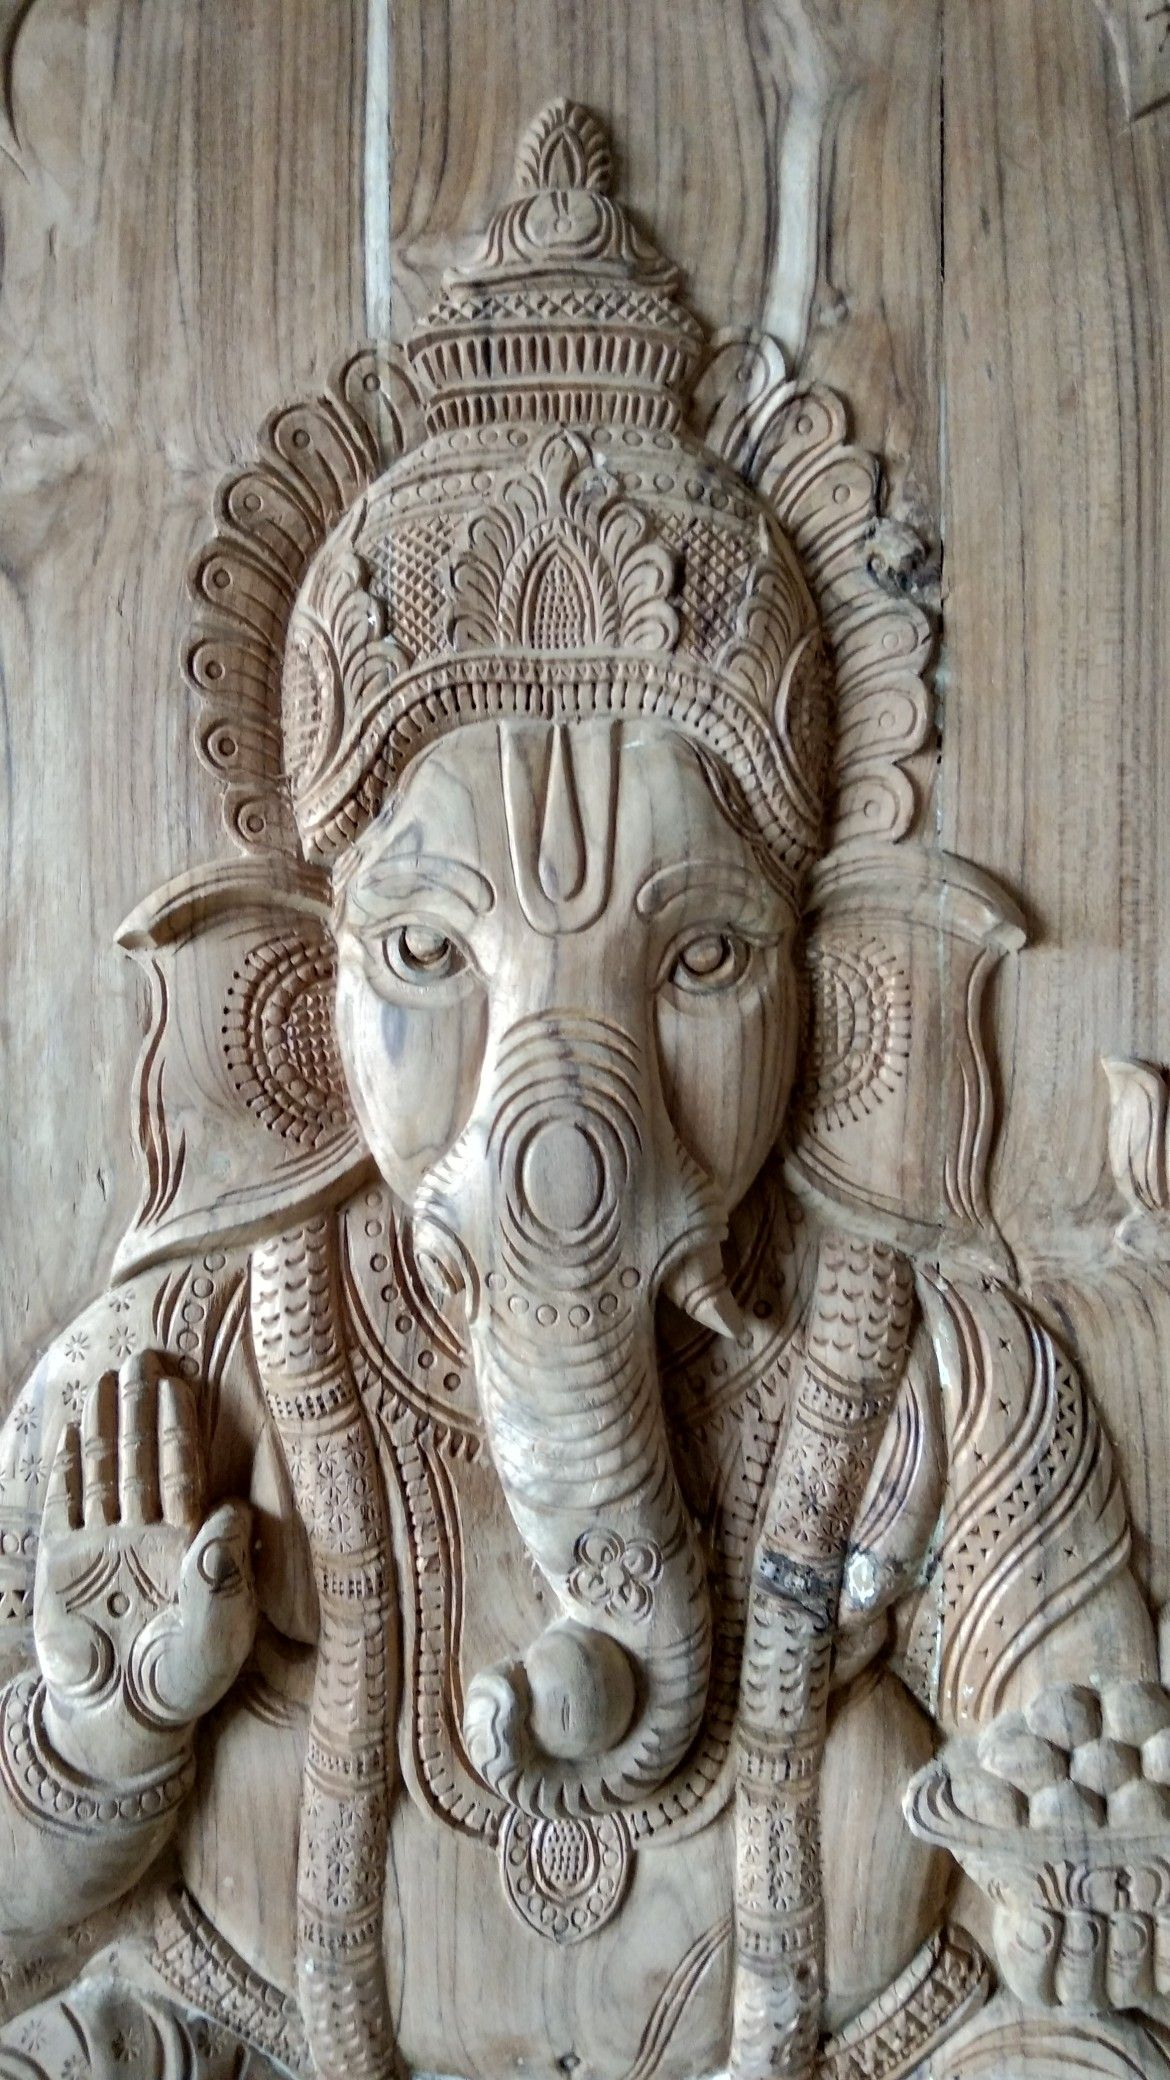 Pooja Room Door Carving Designs Google Search: Ojha Is Missing From The Following Ad